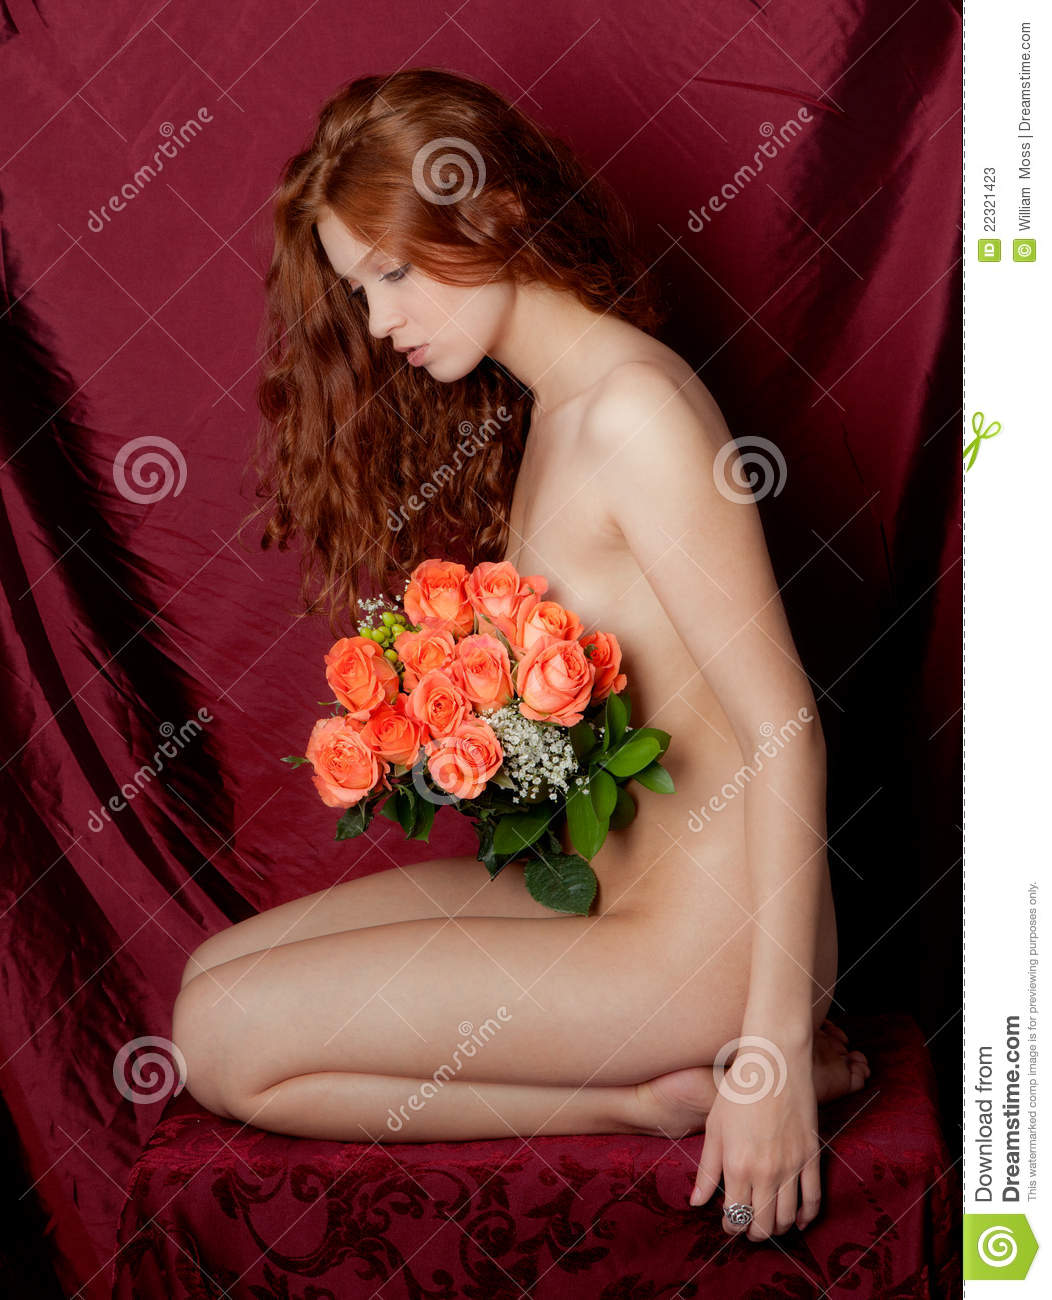 Remarkable, very Naked women in flowers